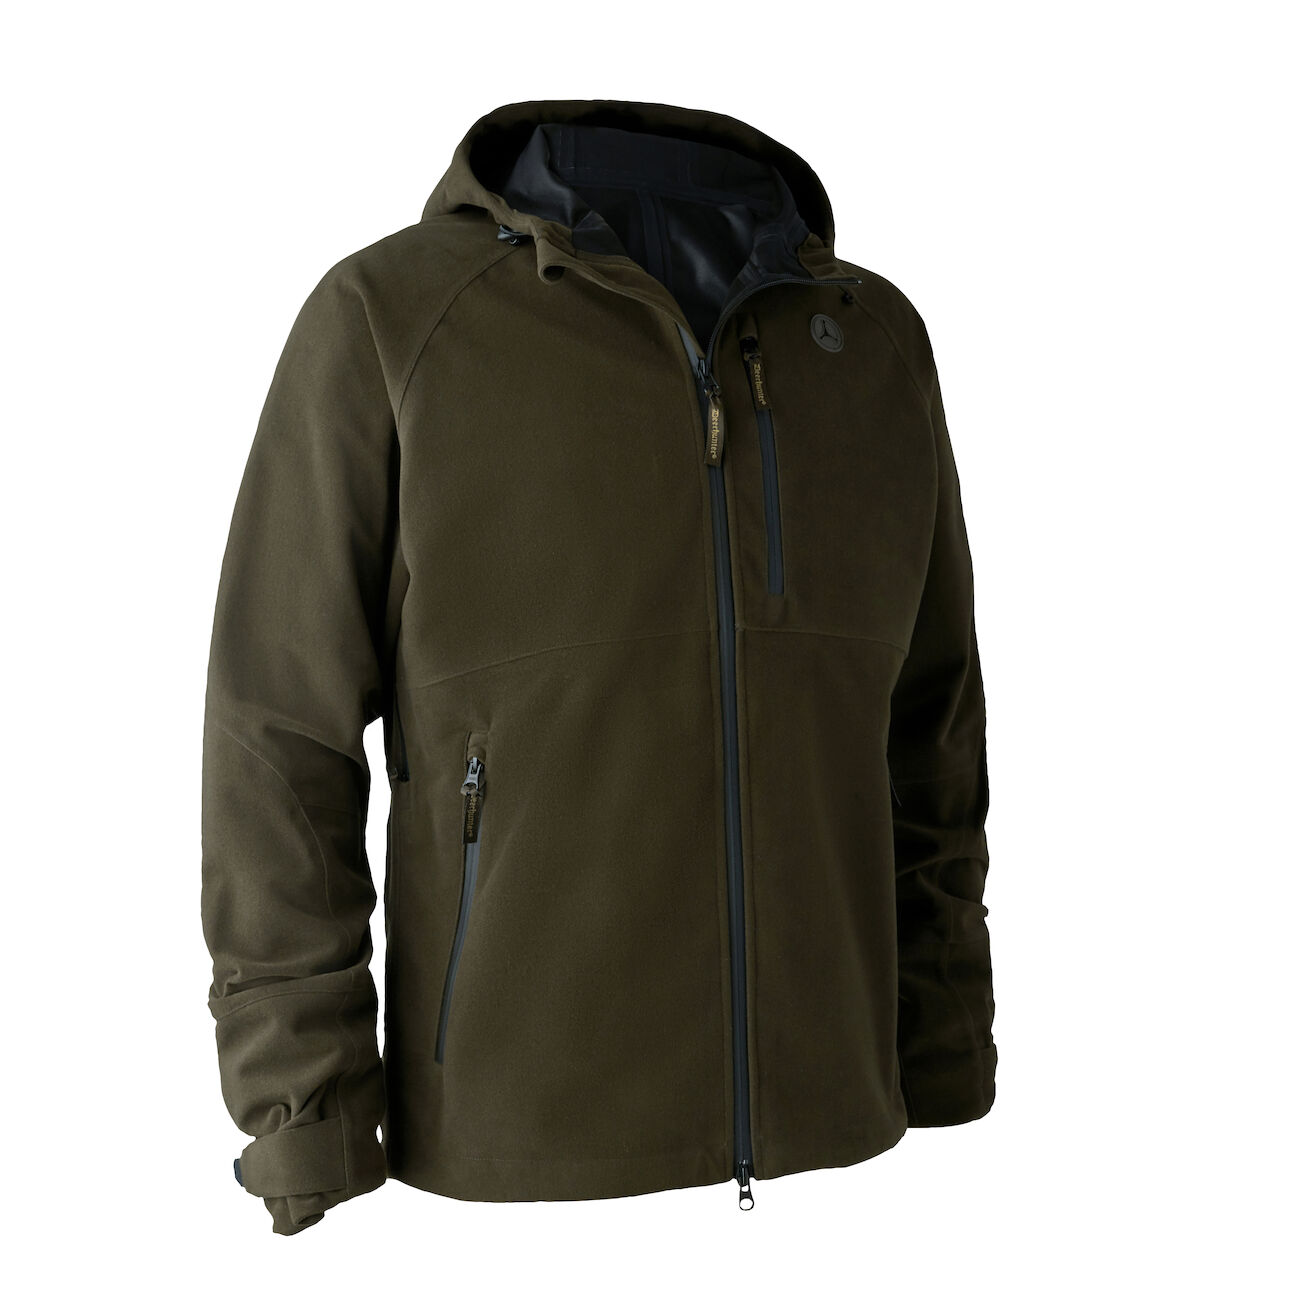 Deerhunter PRO Gamekeeper Jacket - Short - Peat